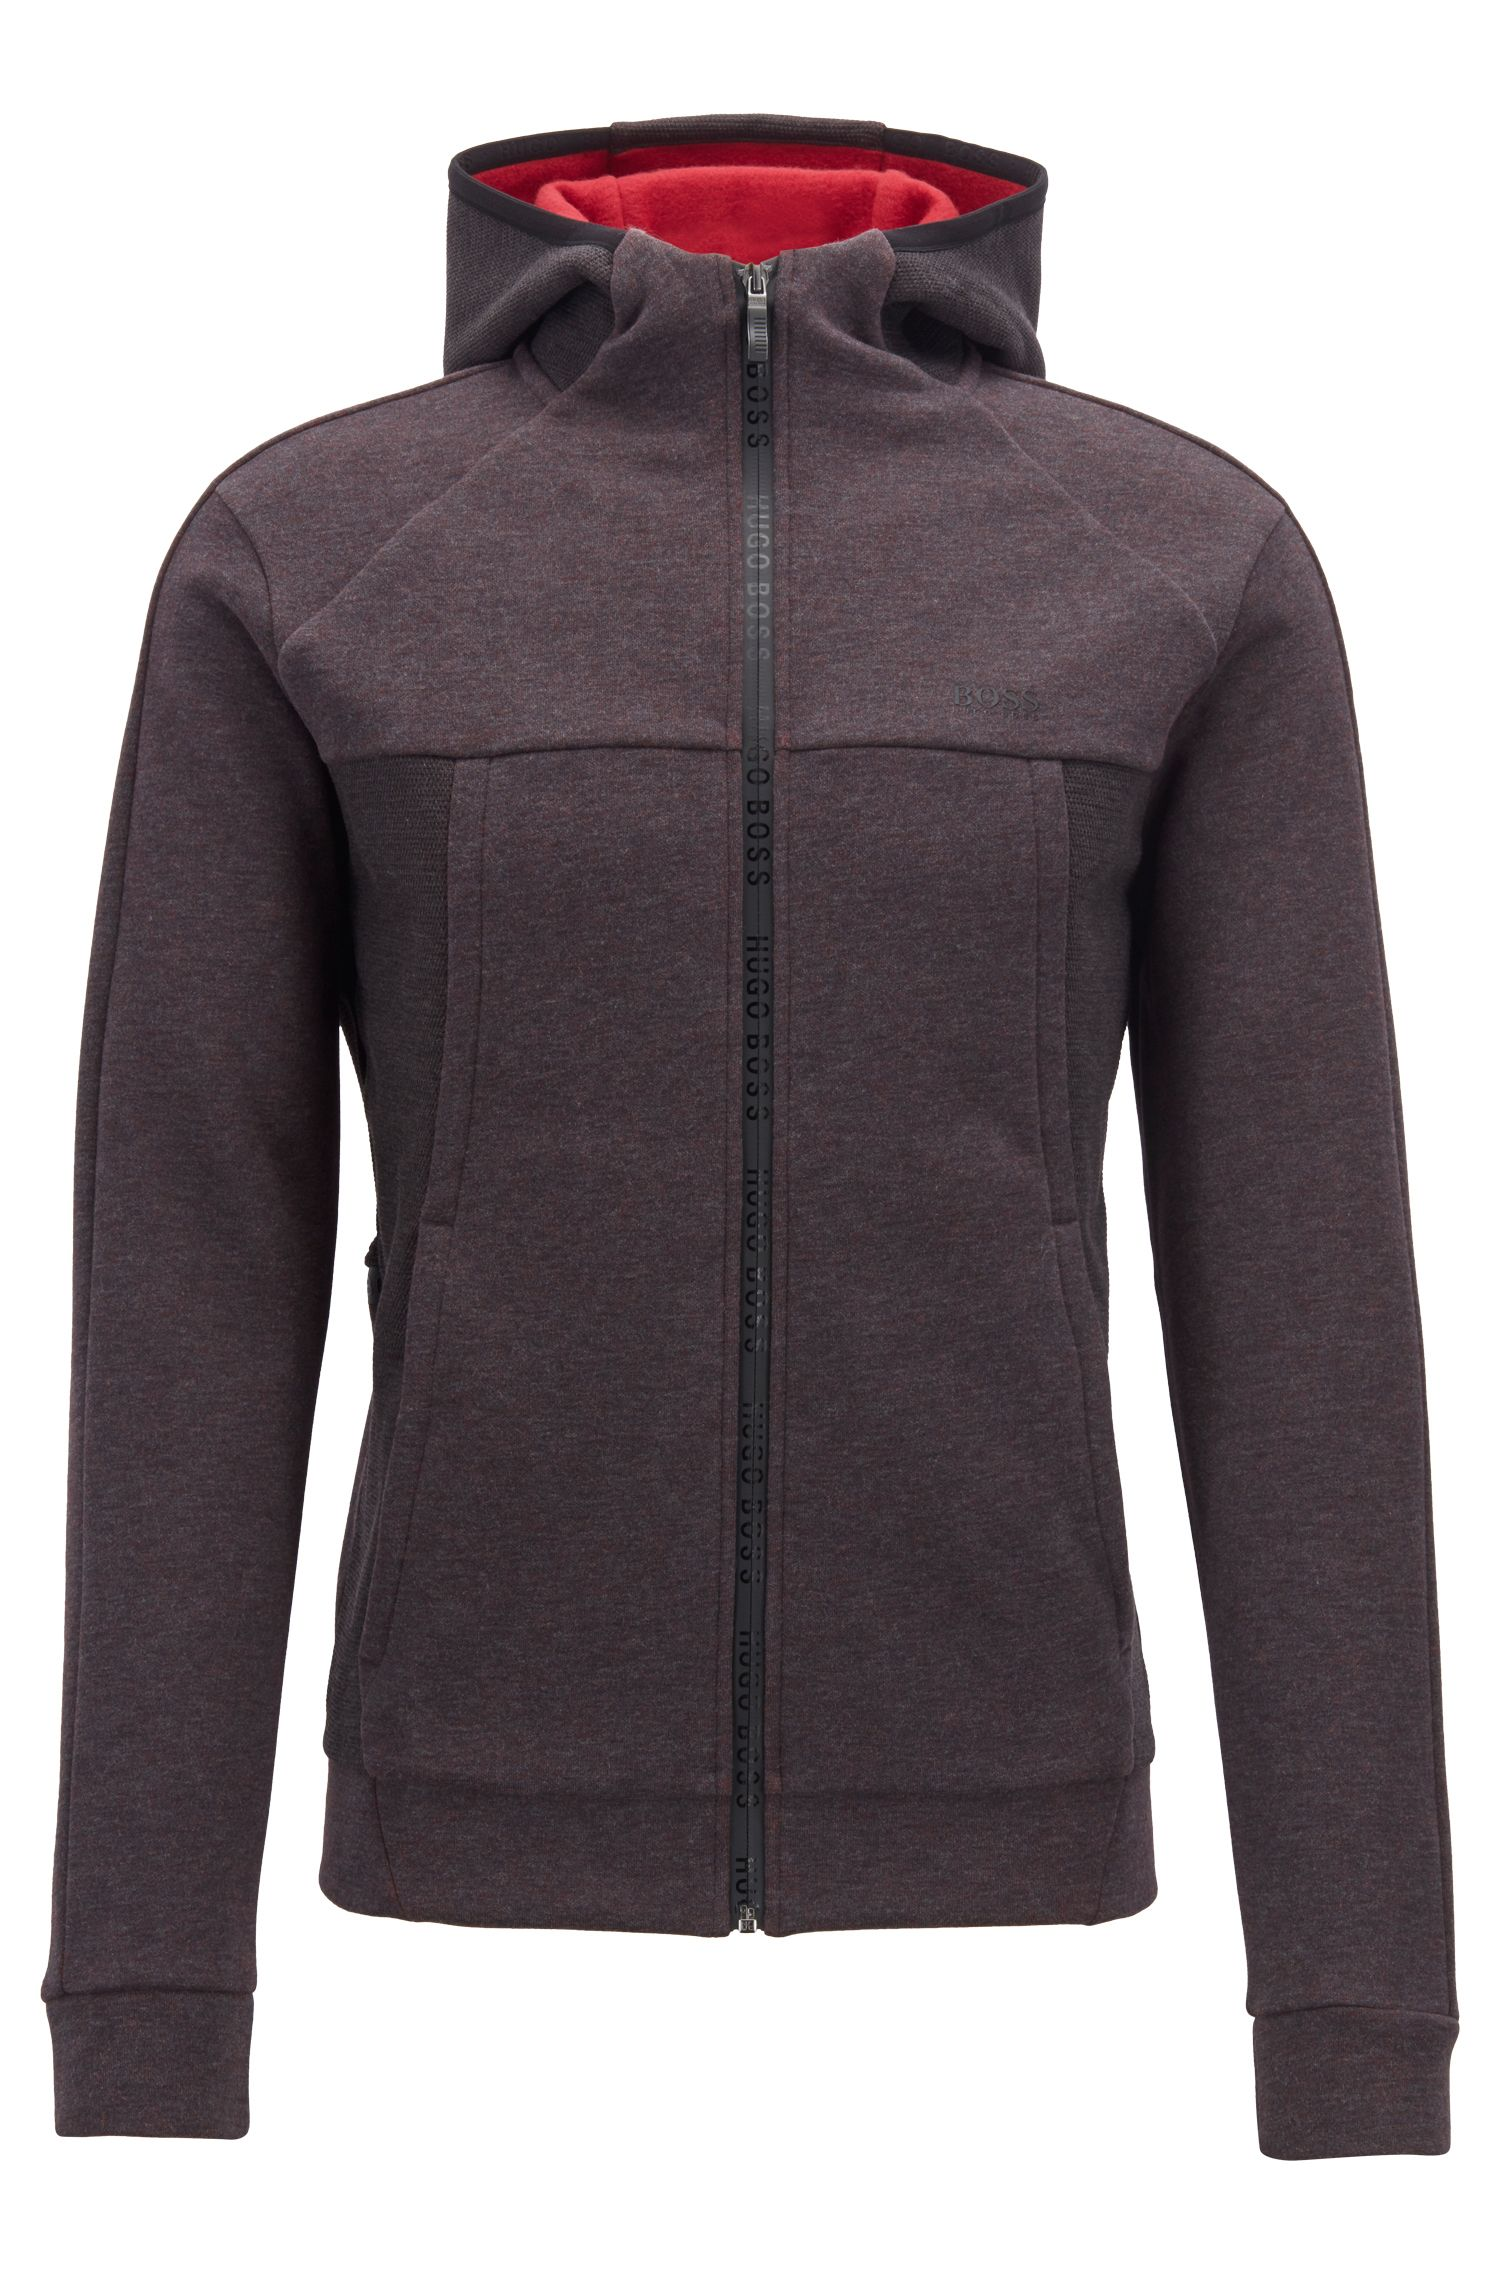 Zip-through hooded sweatshirt in a brushed cotton blend, Anthracite